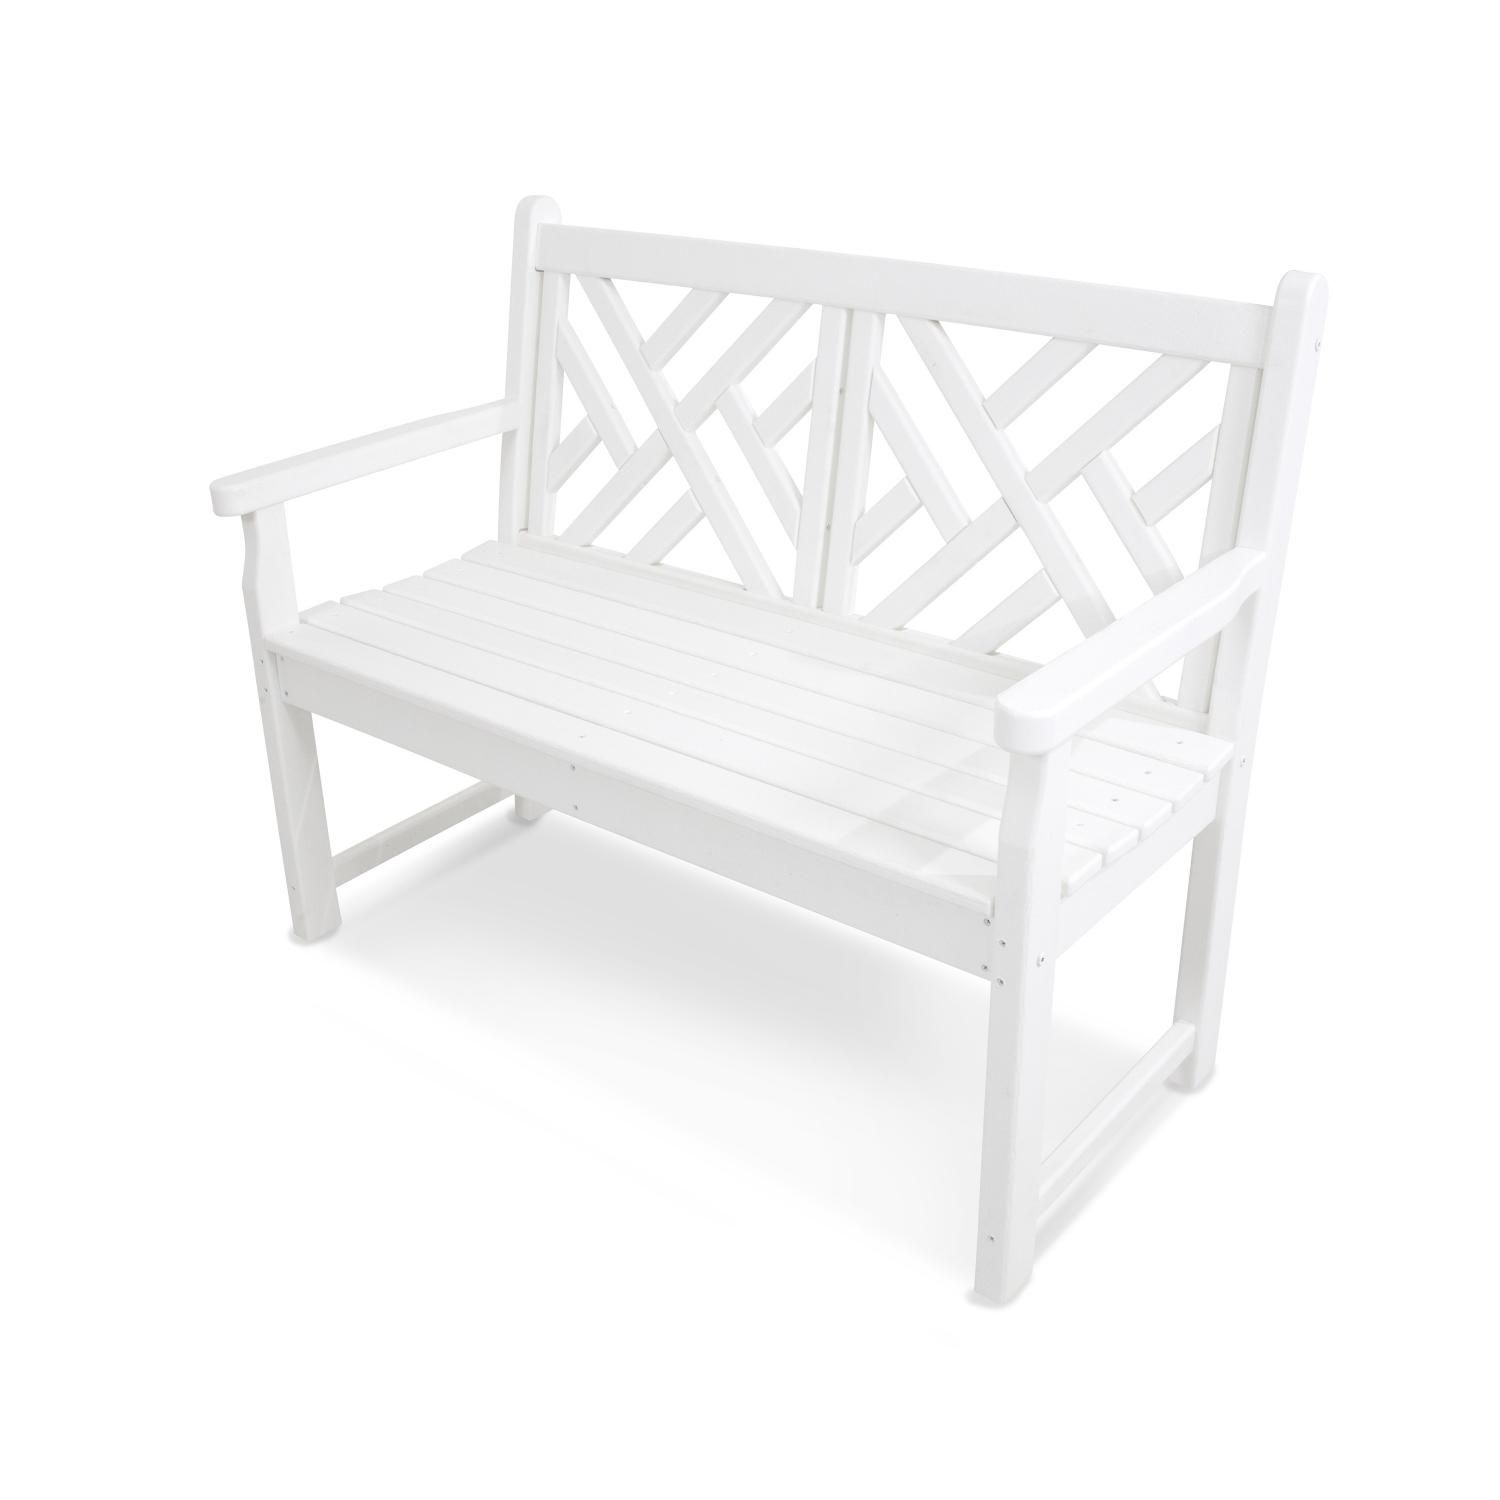 Excellent Polywood Chippendale White Recycled Plastic Wood 48 Inch Pdpeps Interior Chair Design Pdpepsorg